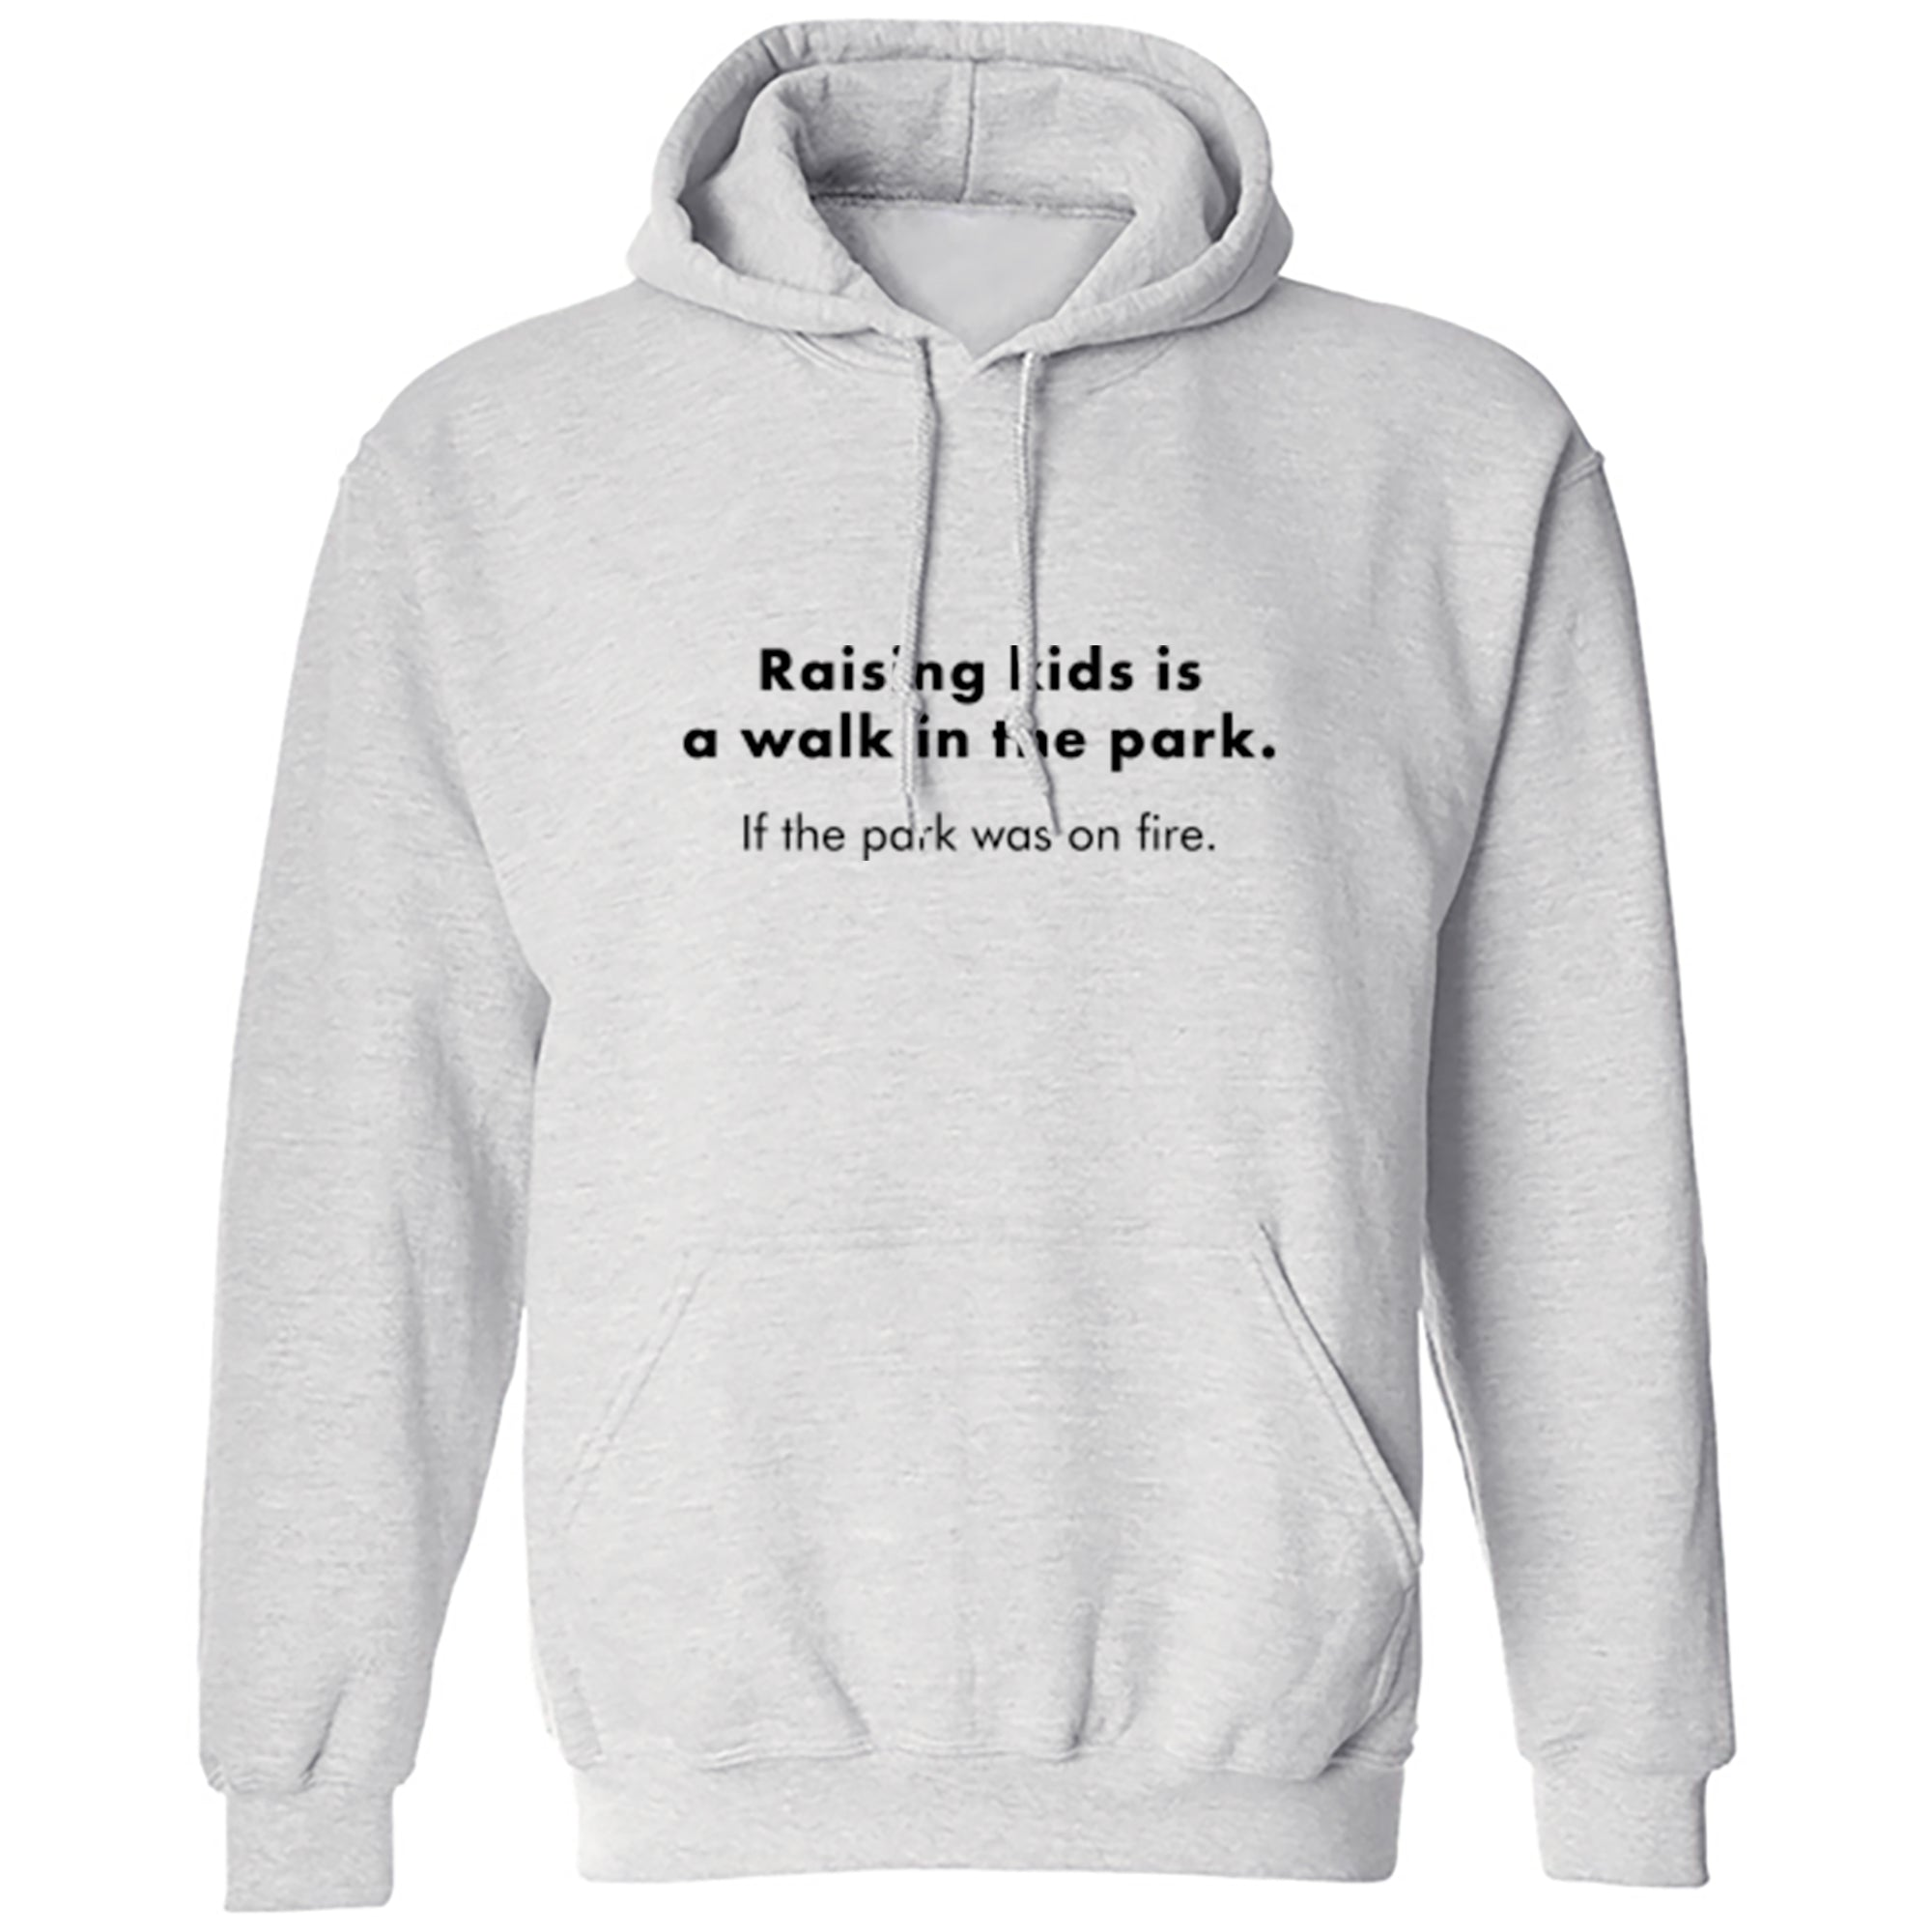 Raising Kids Is A Walk In The Park Unisex Hoodie A0090 - Illustrated Identity Ltd.